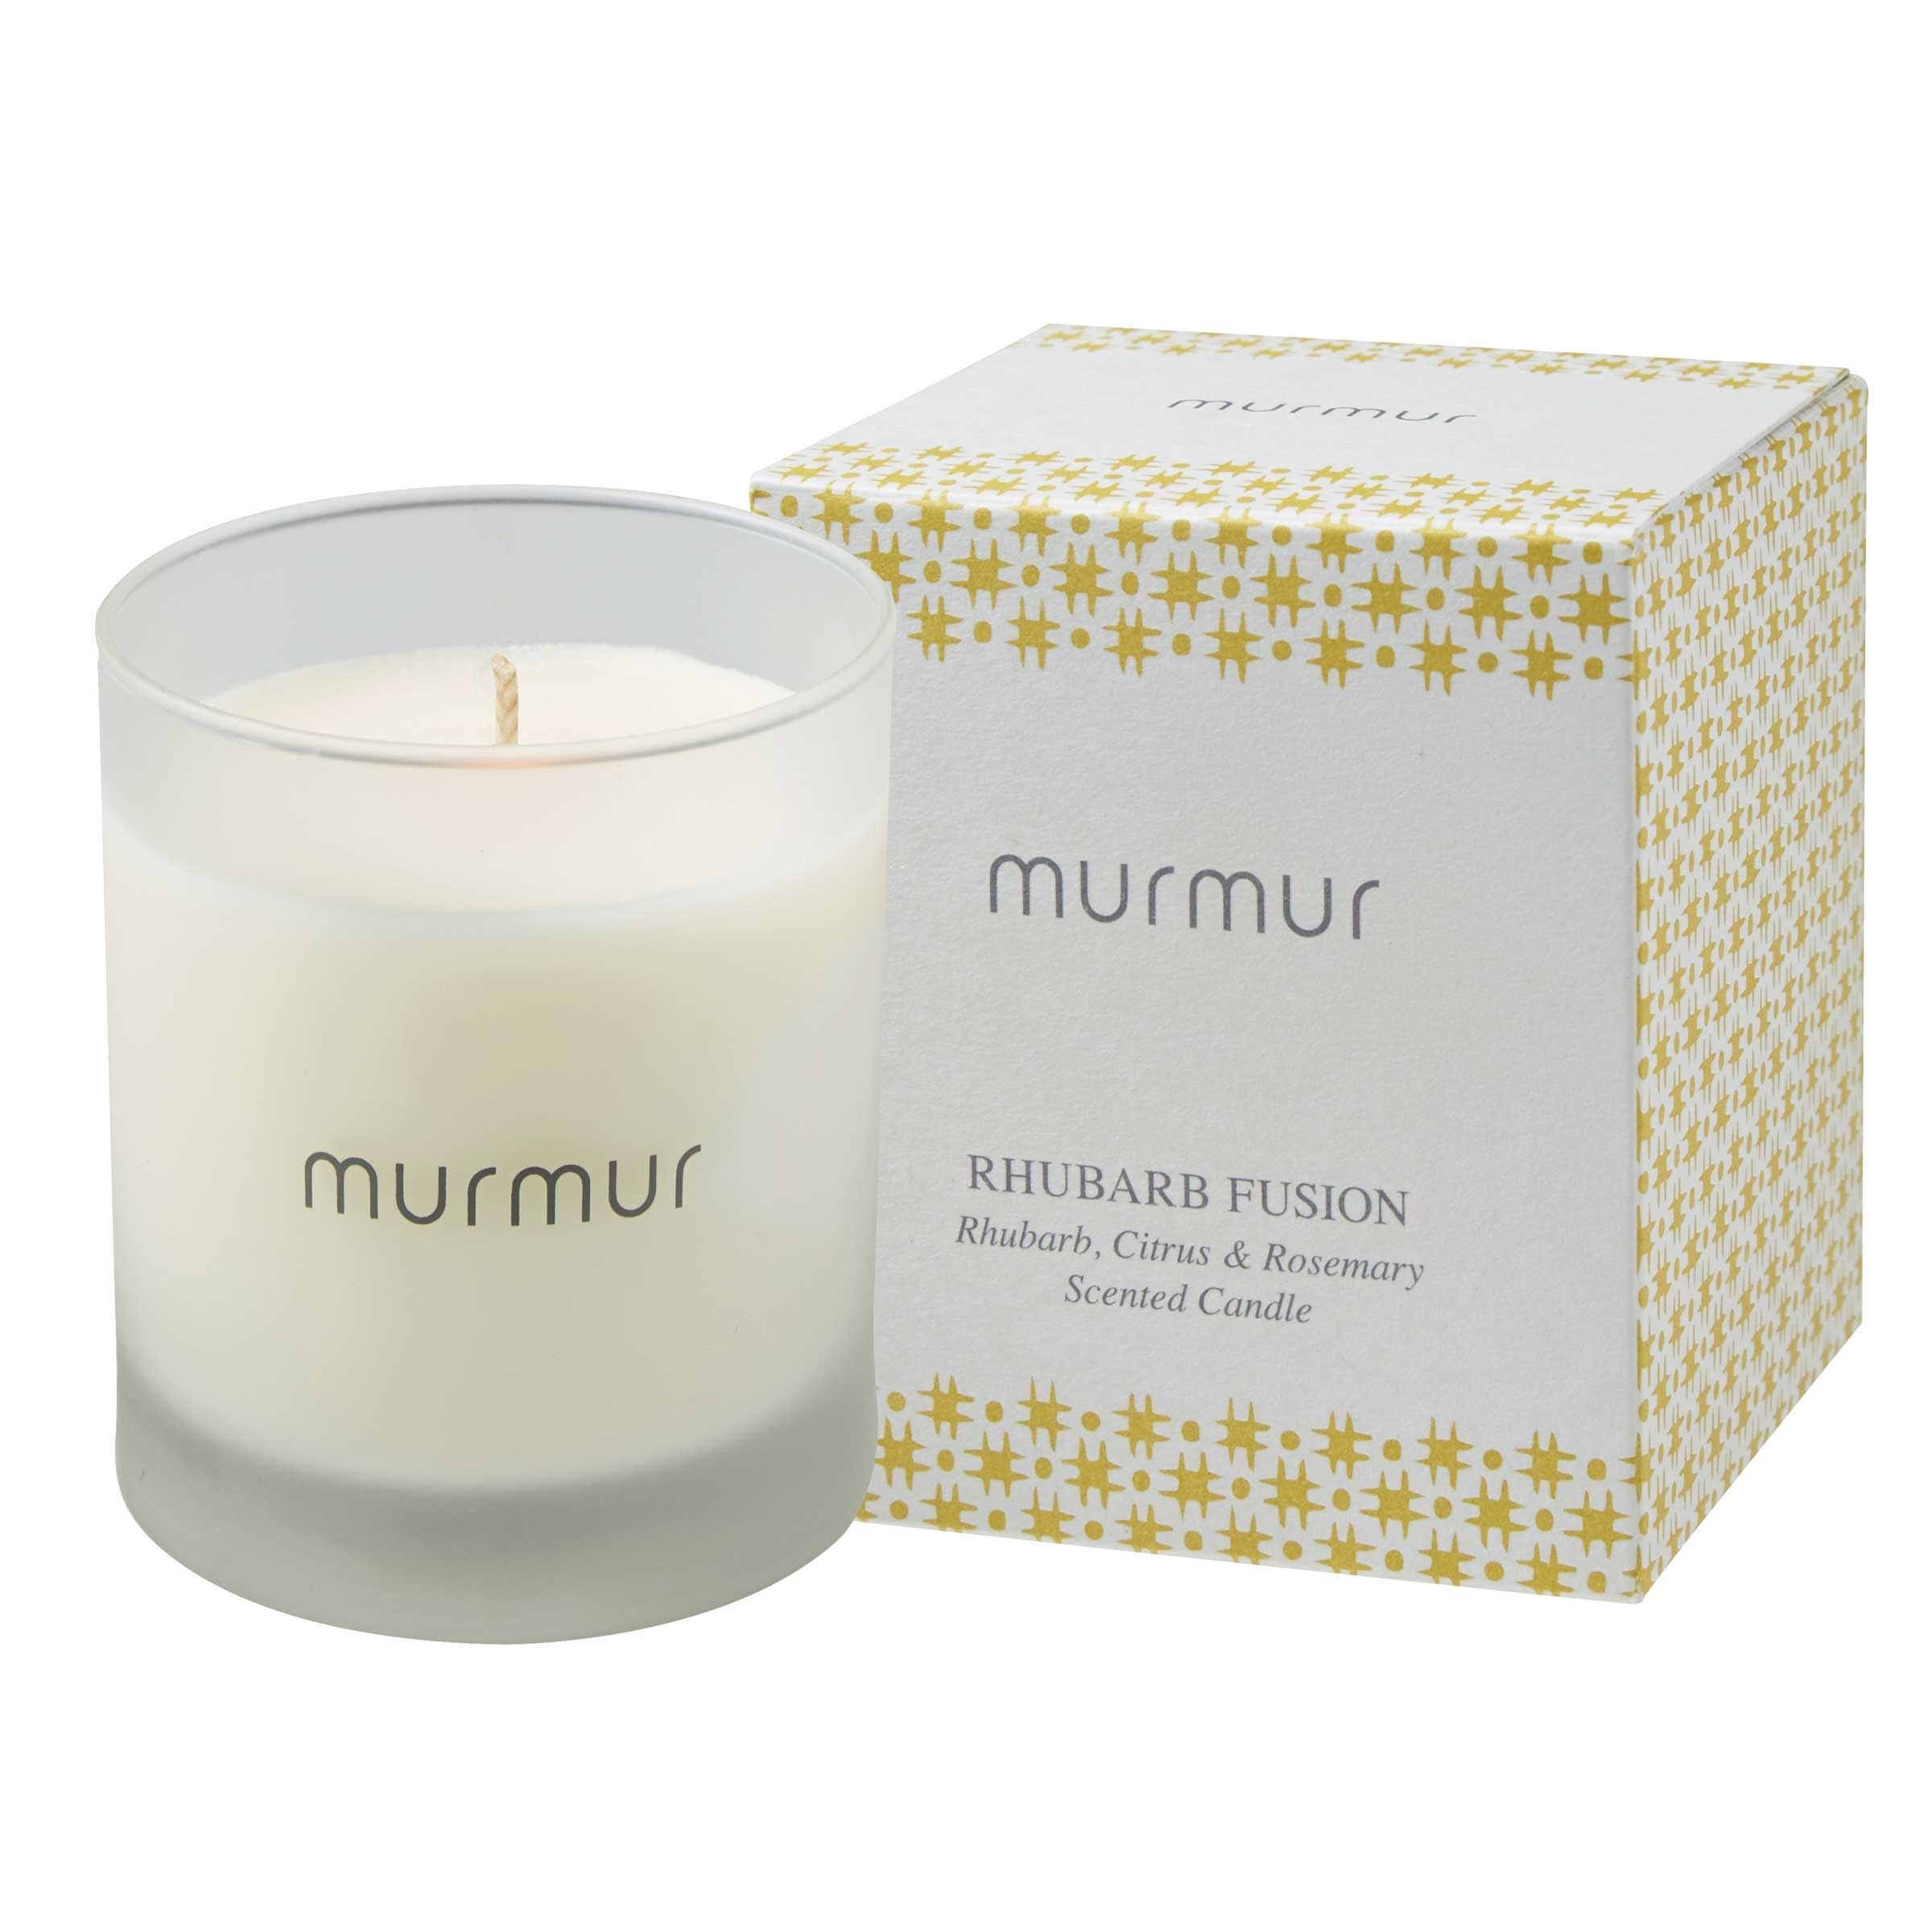 Murmur Rhubarb Fusion Scented Candle (1 wick)